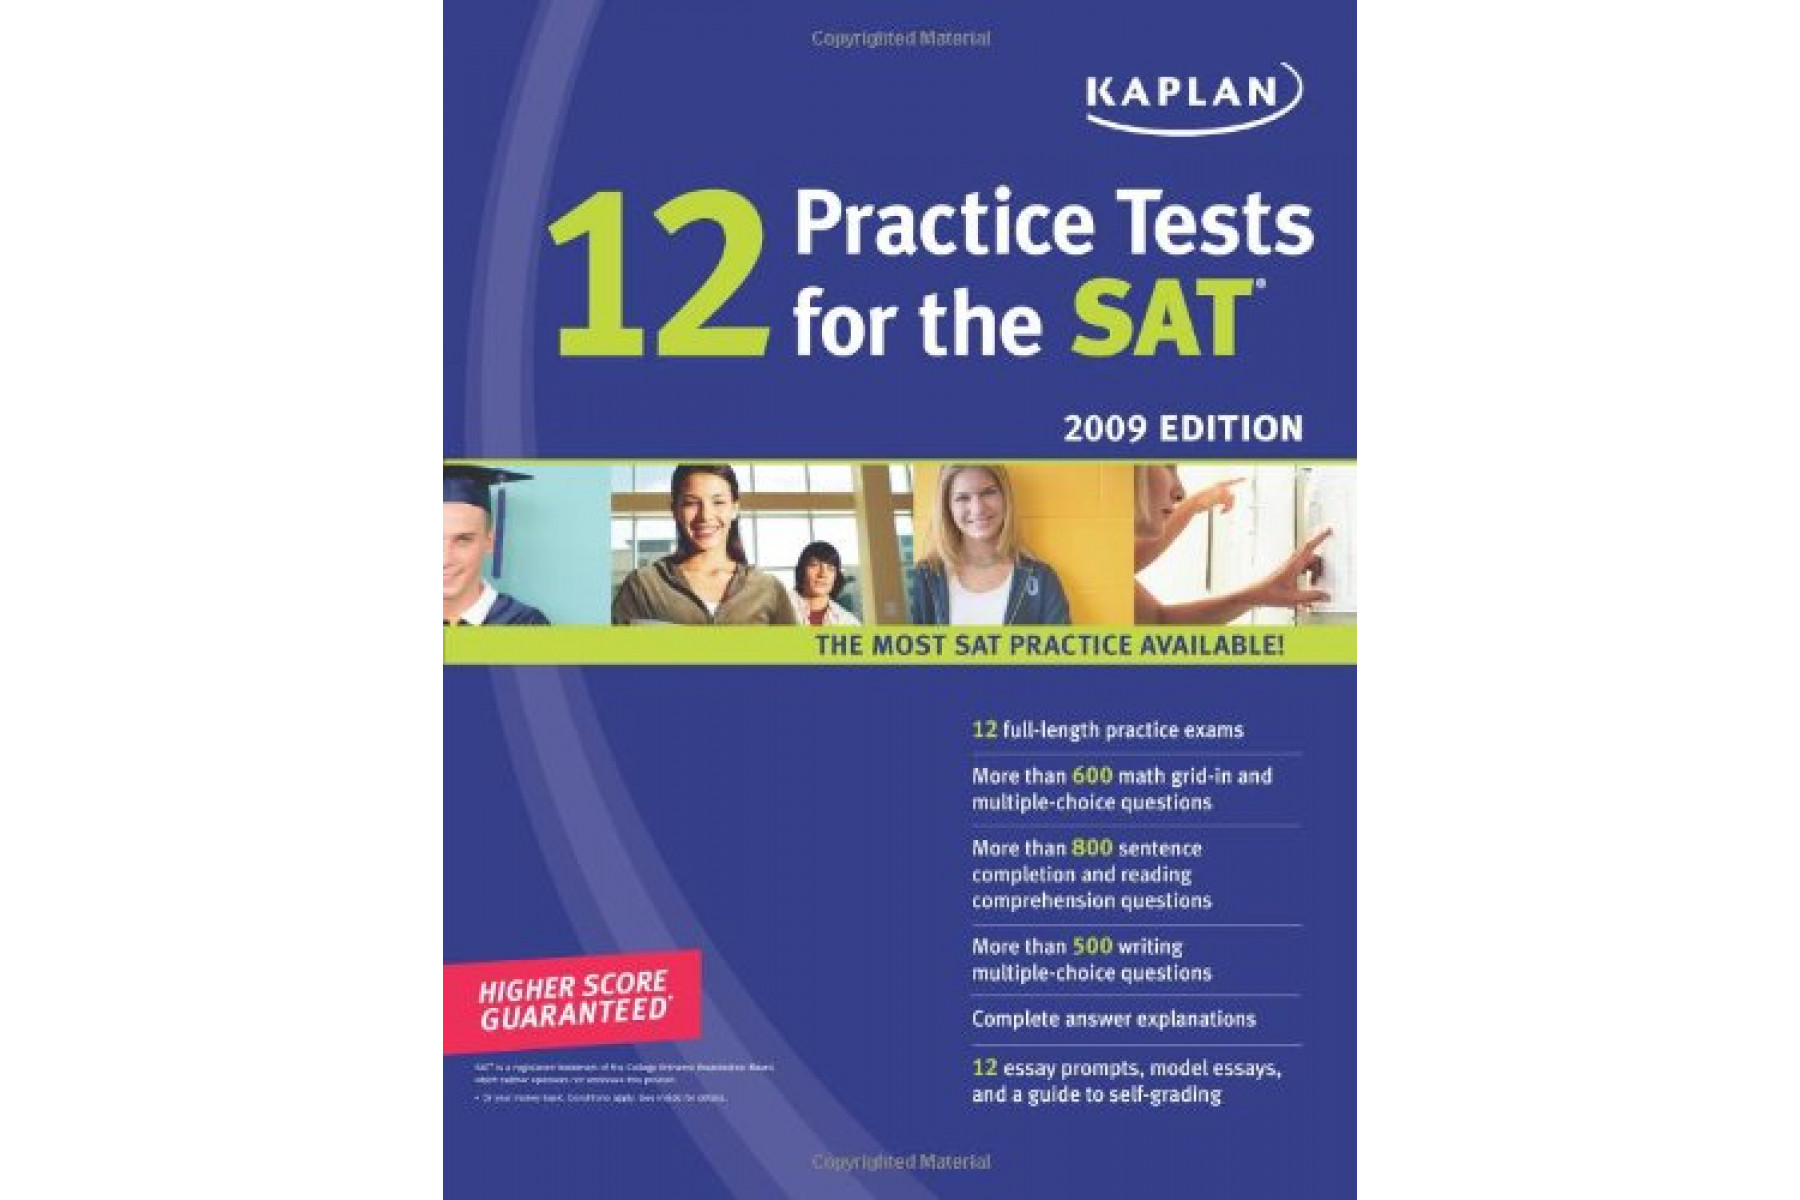 Kaplan 12 Practice Tests for the SAT 2009